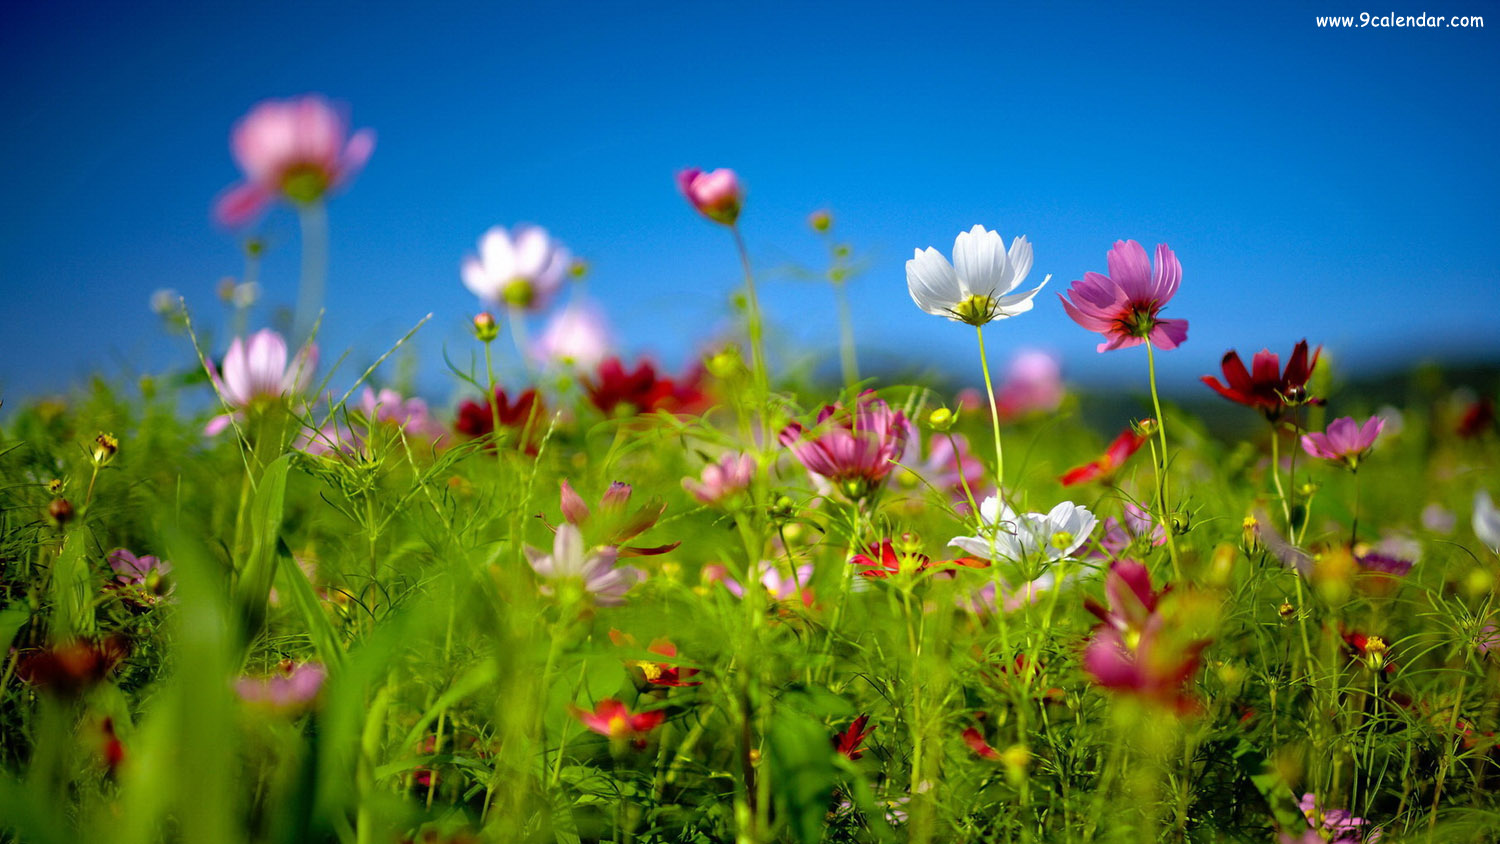 https://finerfem.files.wordpress.com/2014/07/spring-wildflowers-wallpaper.jpg